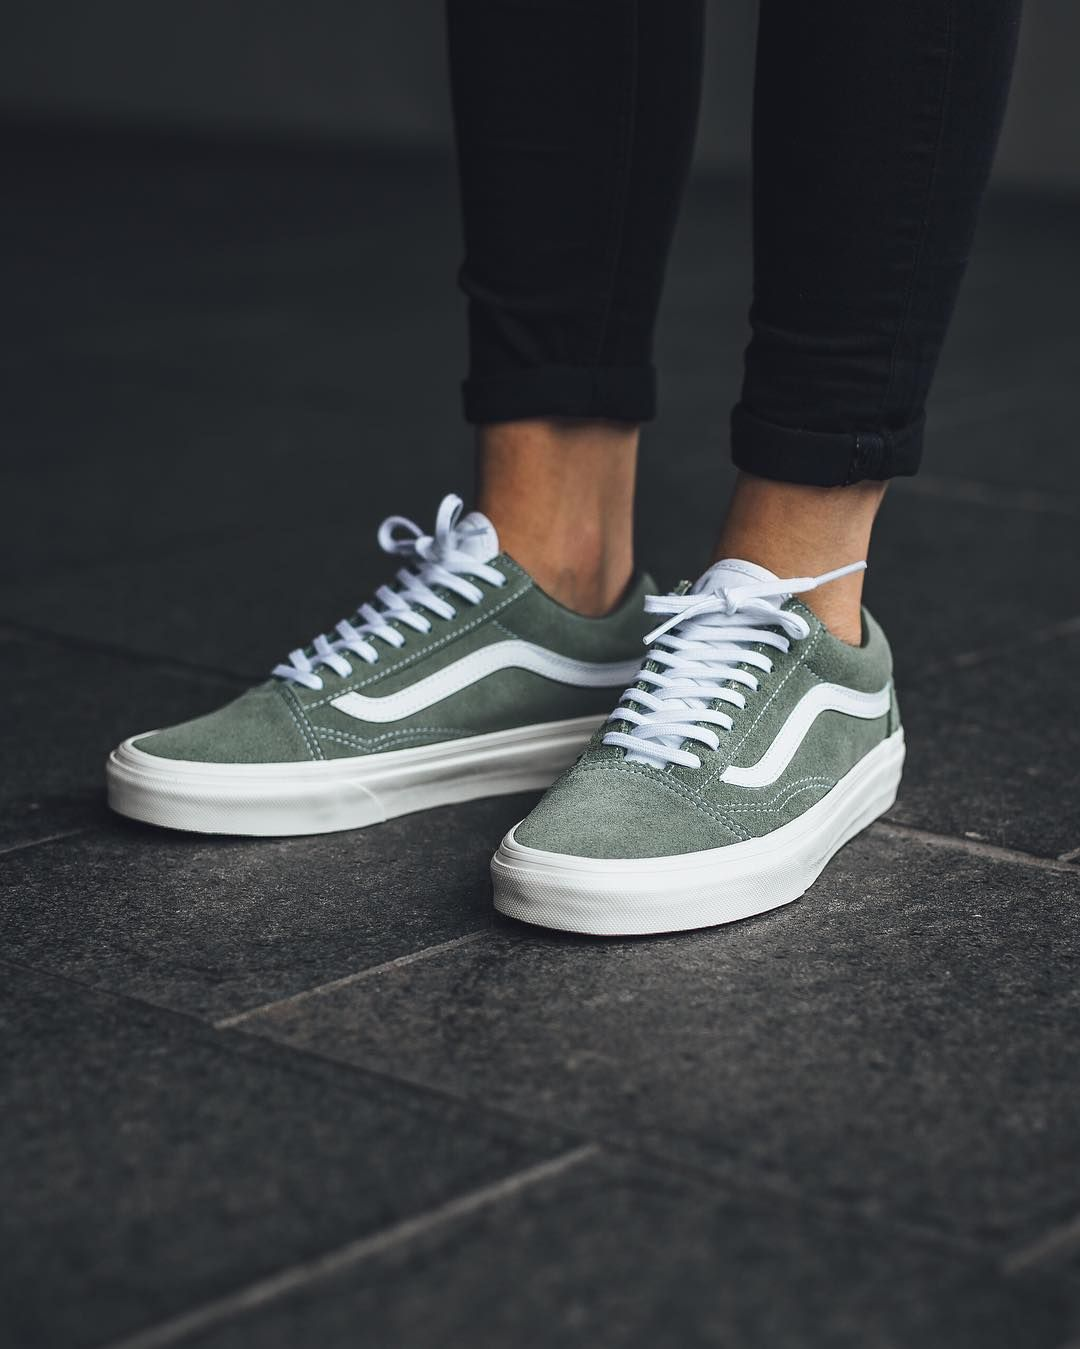 3a0f2db0f3e VANS Old Skool